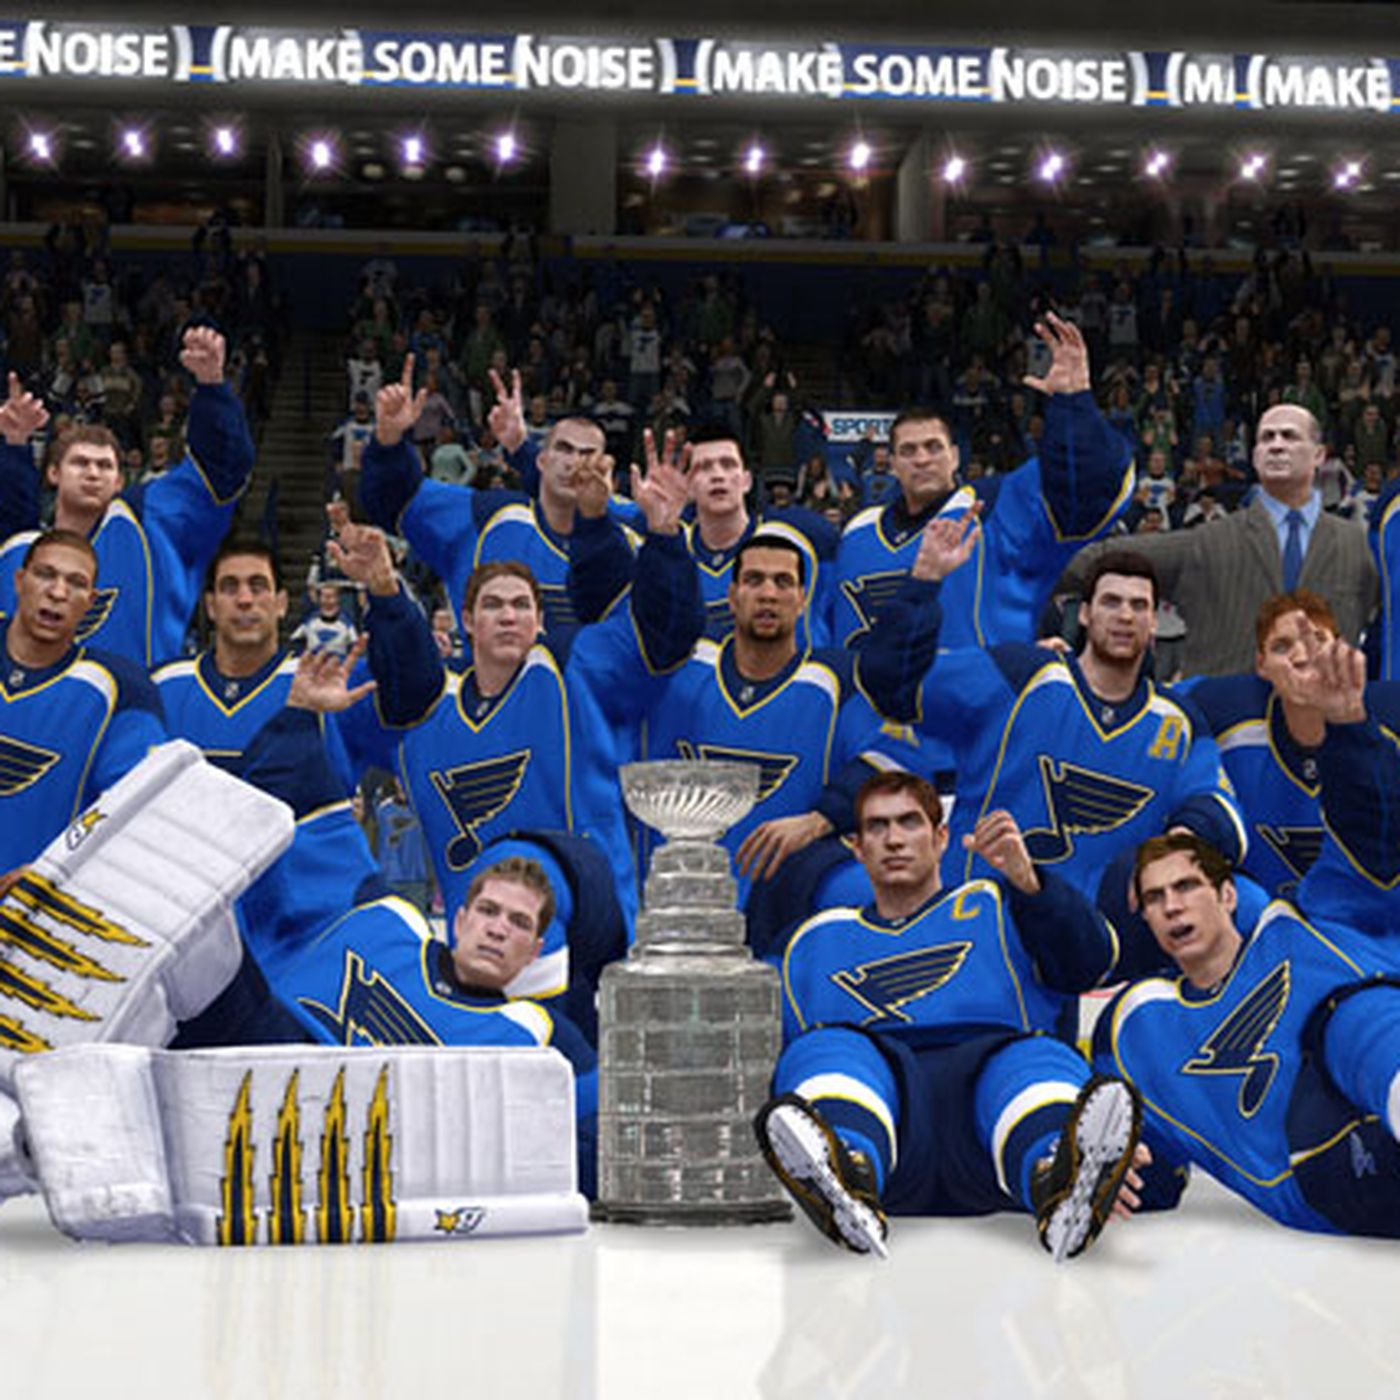 Nhl 14 Predicts St Louis Blues Win 2014 Stanley Cup Polygon